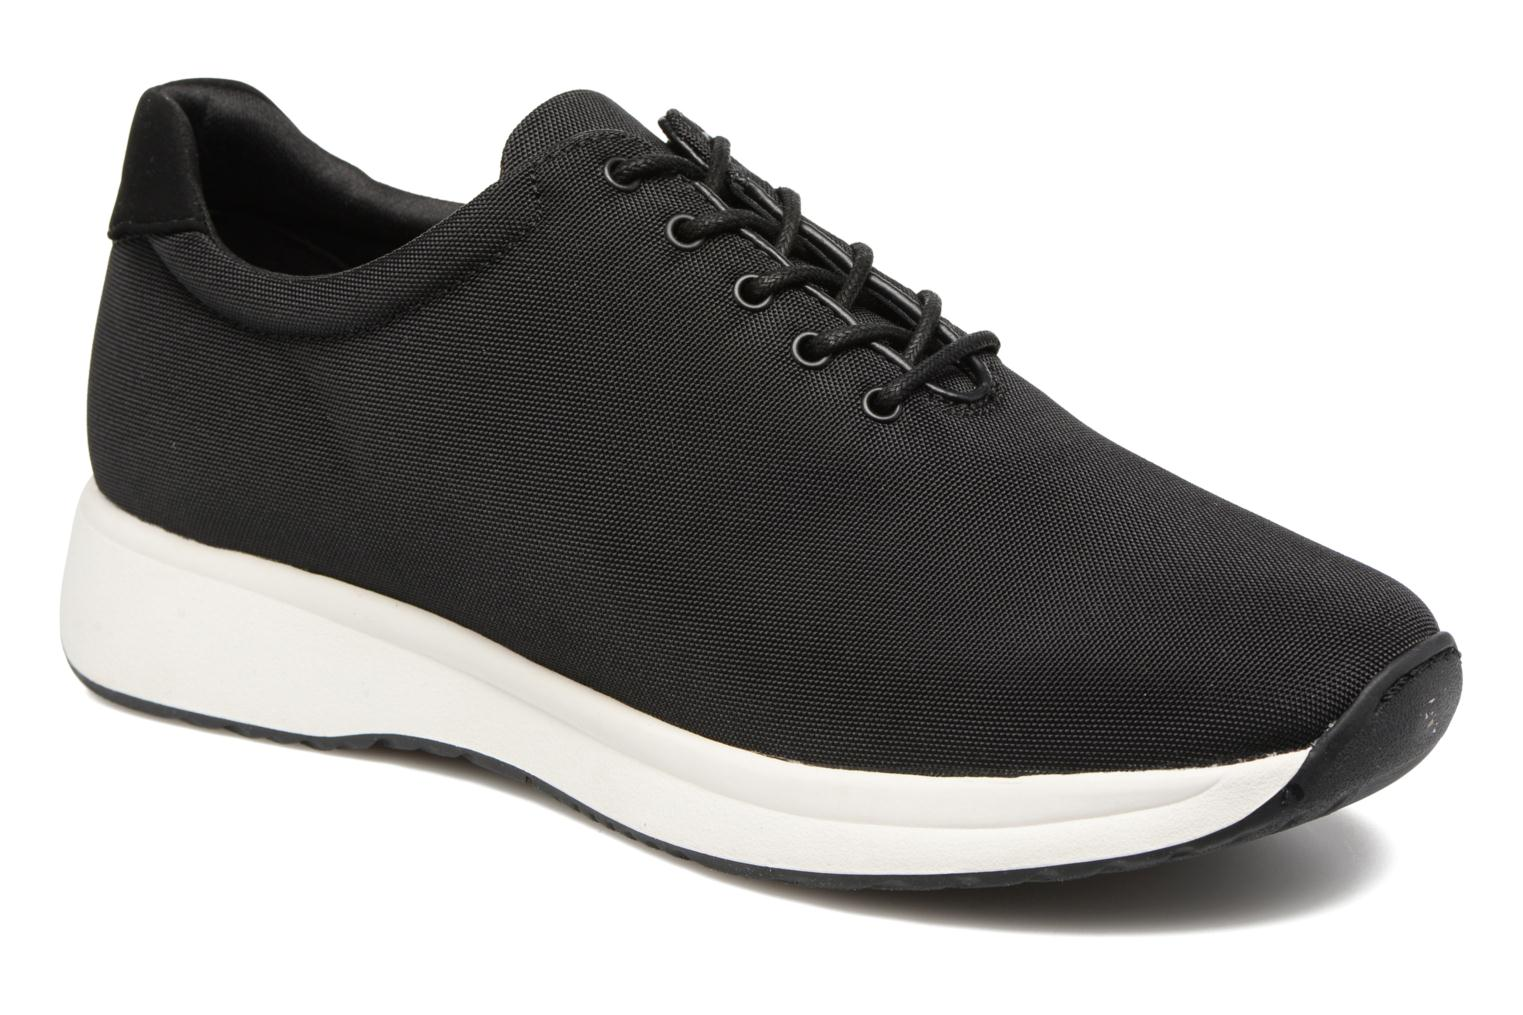 CINTIA RUN 4324-080 Black